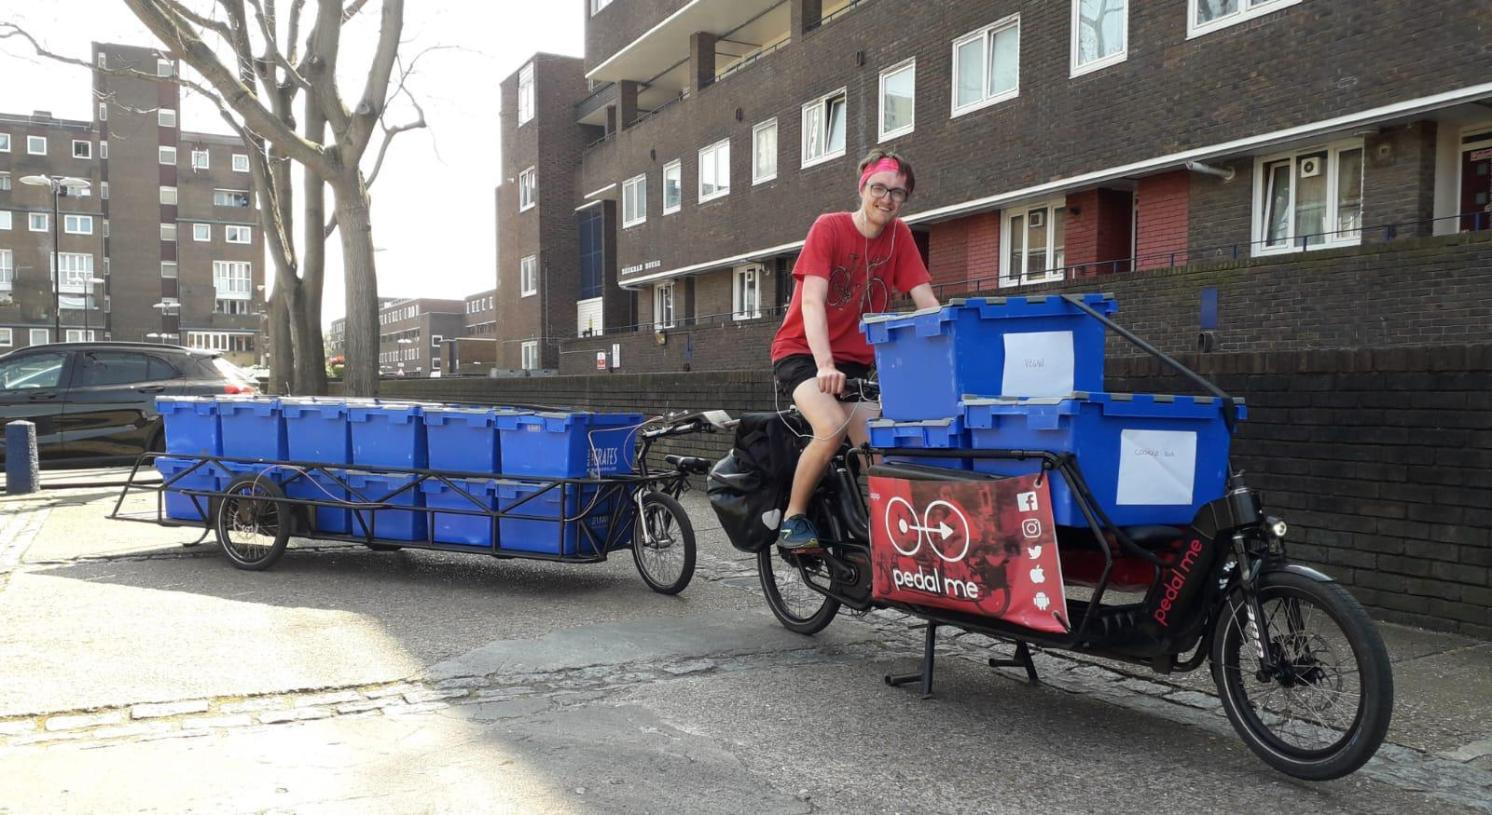 A rider carrying large plastic crates containing Covid care packages on a cargo bike with a trailer attached